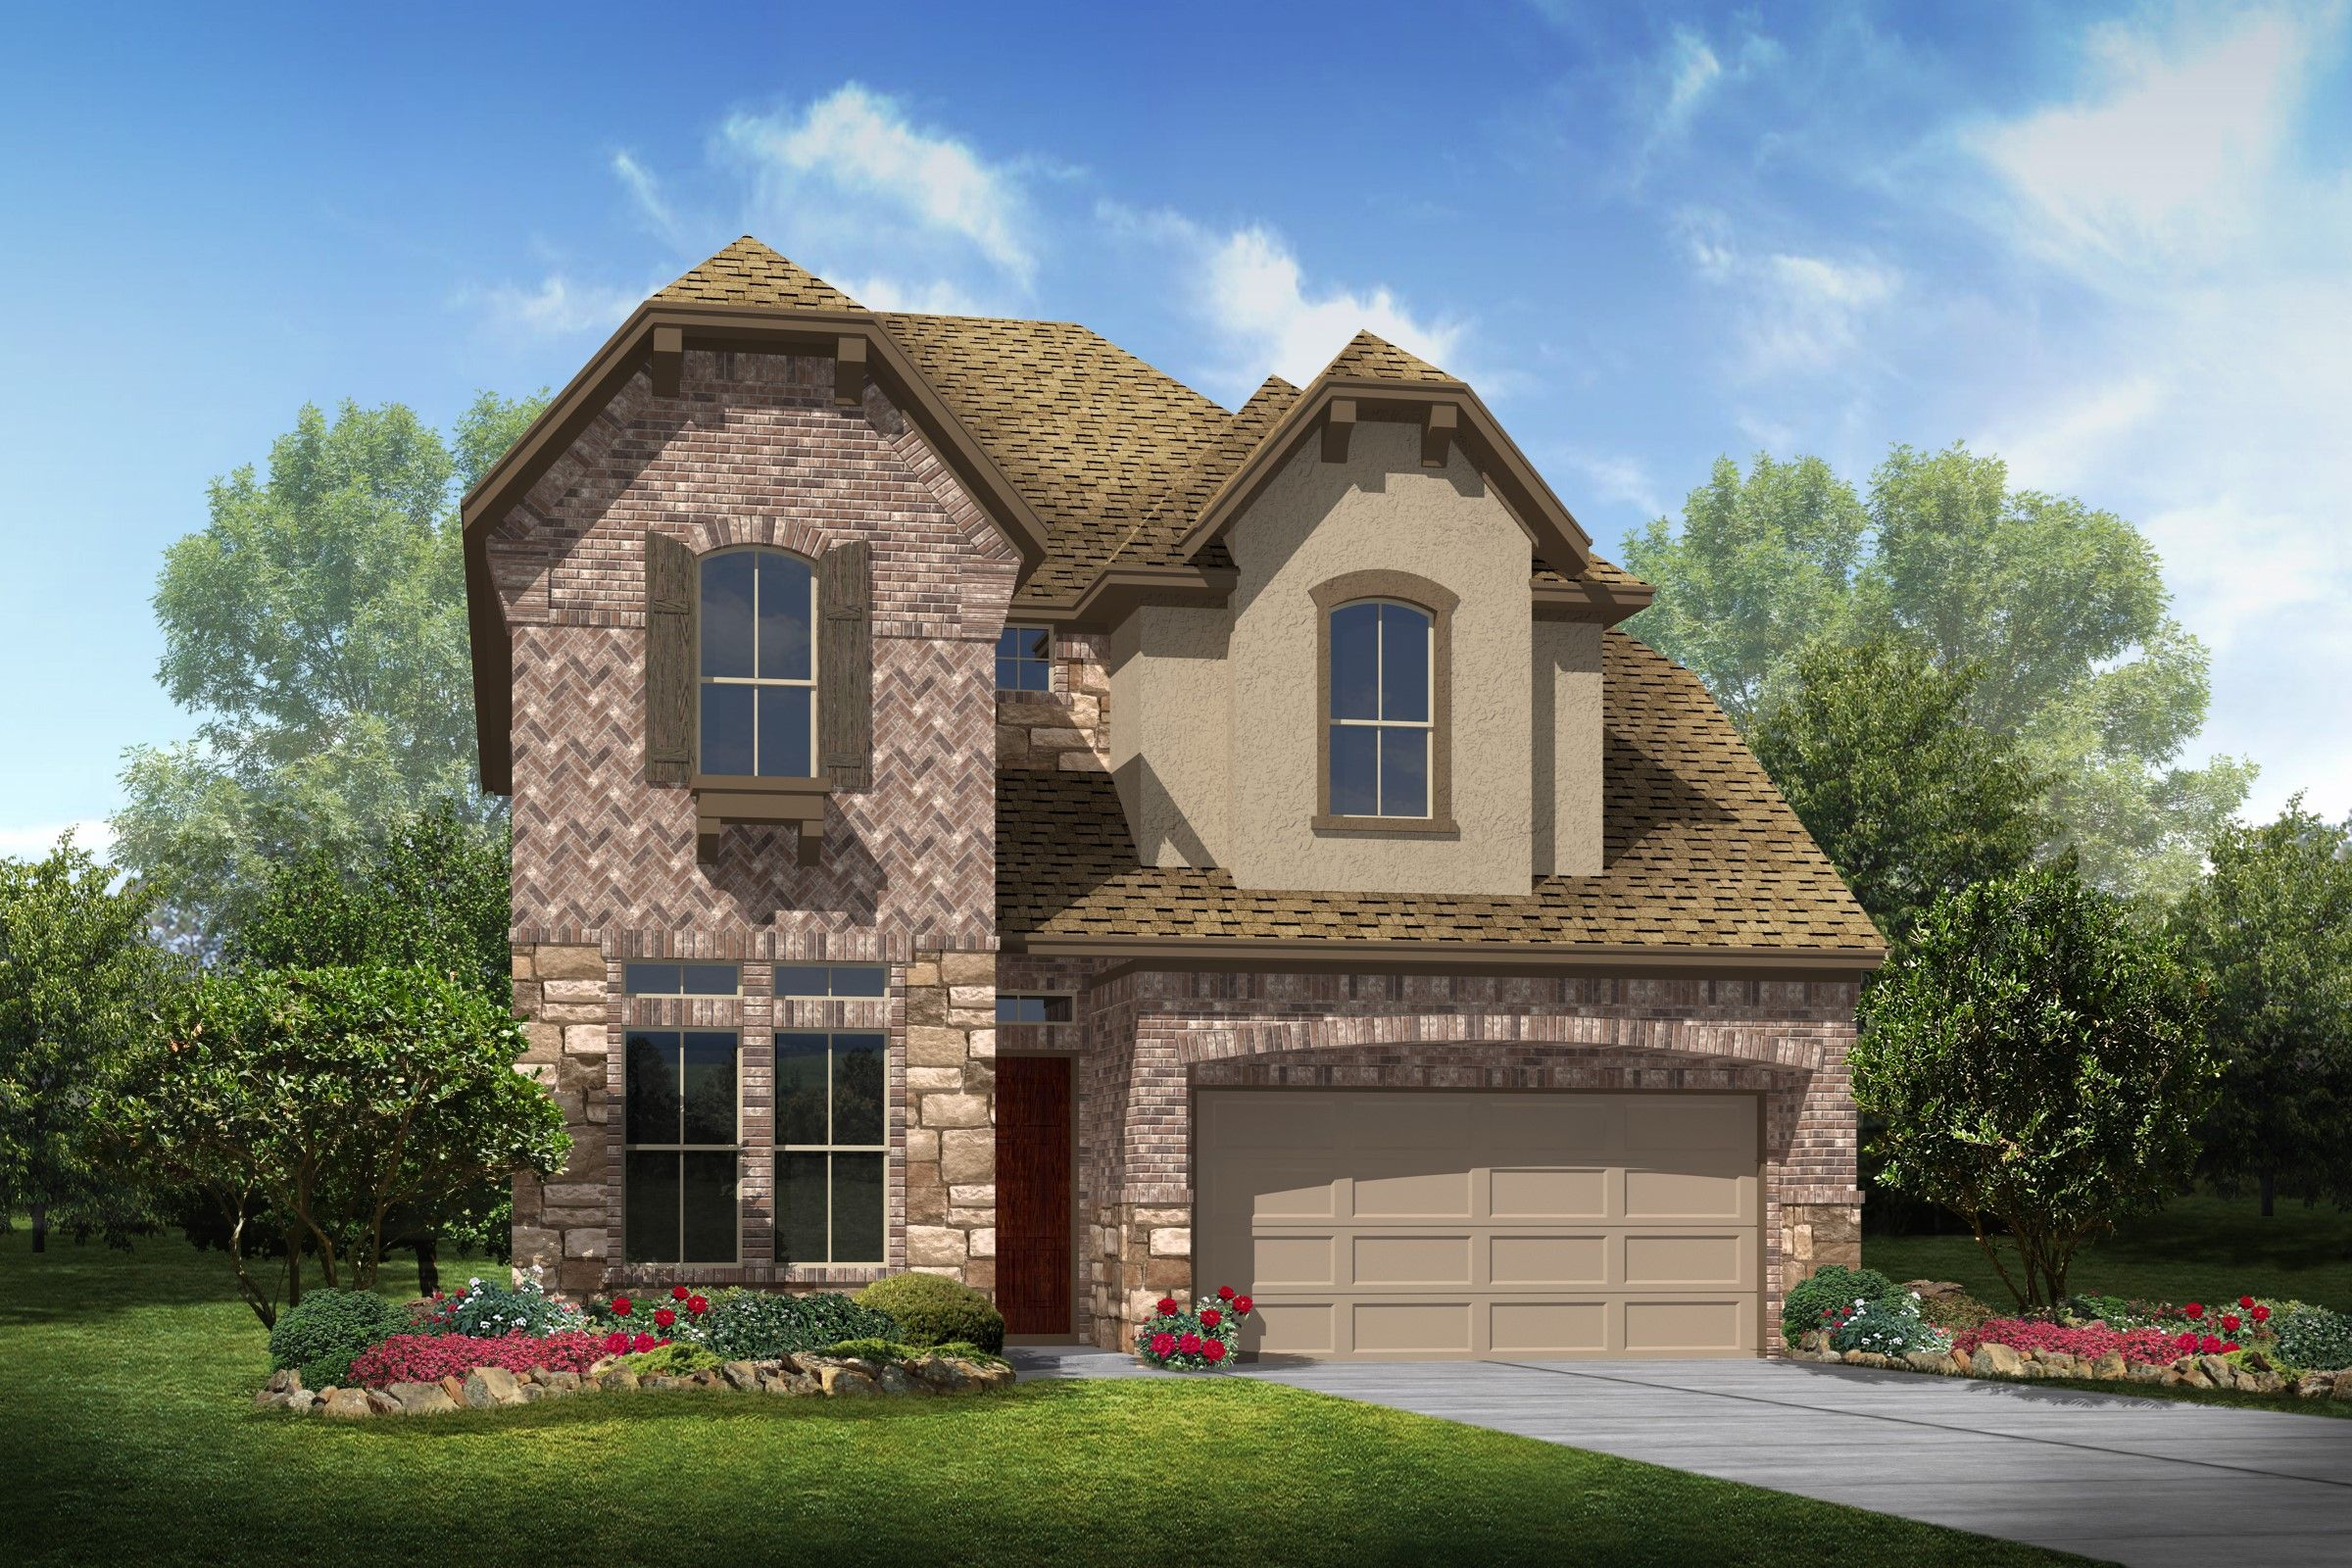 Single Family for Sale at Parkway Terrace - Michael 2109 Westbourne Park Drive Houston, Texas 77077 United States